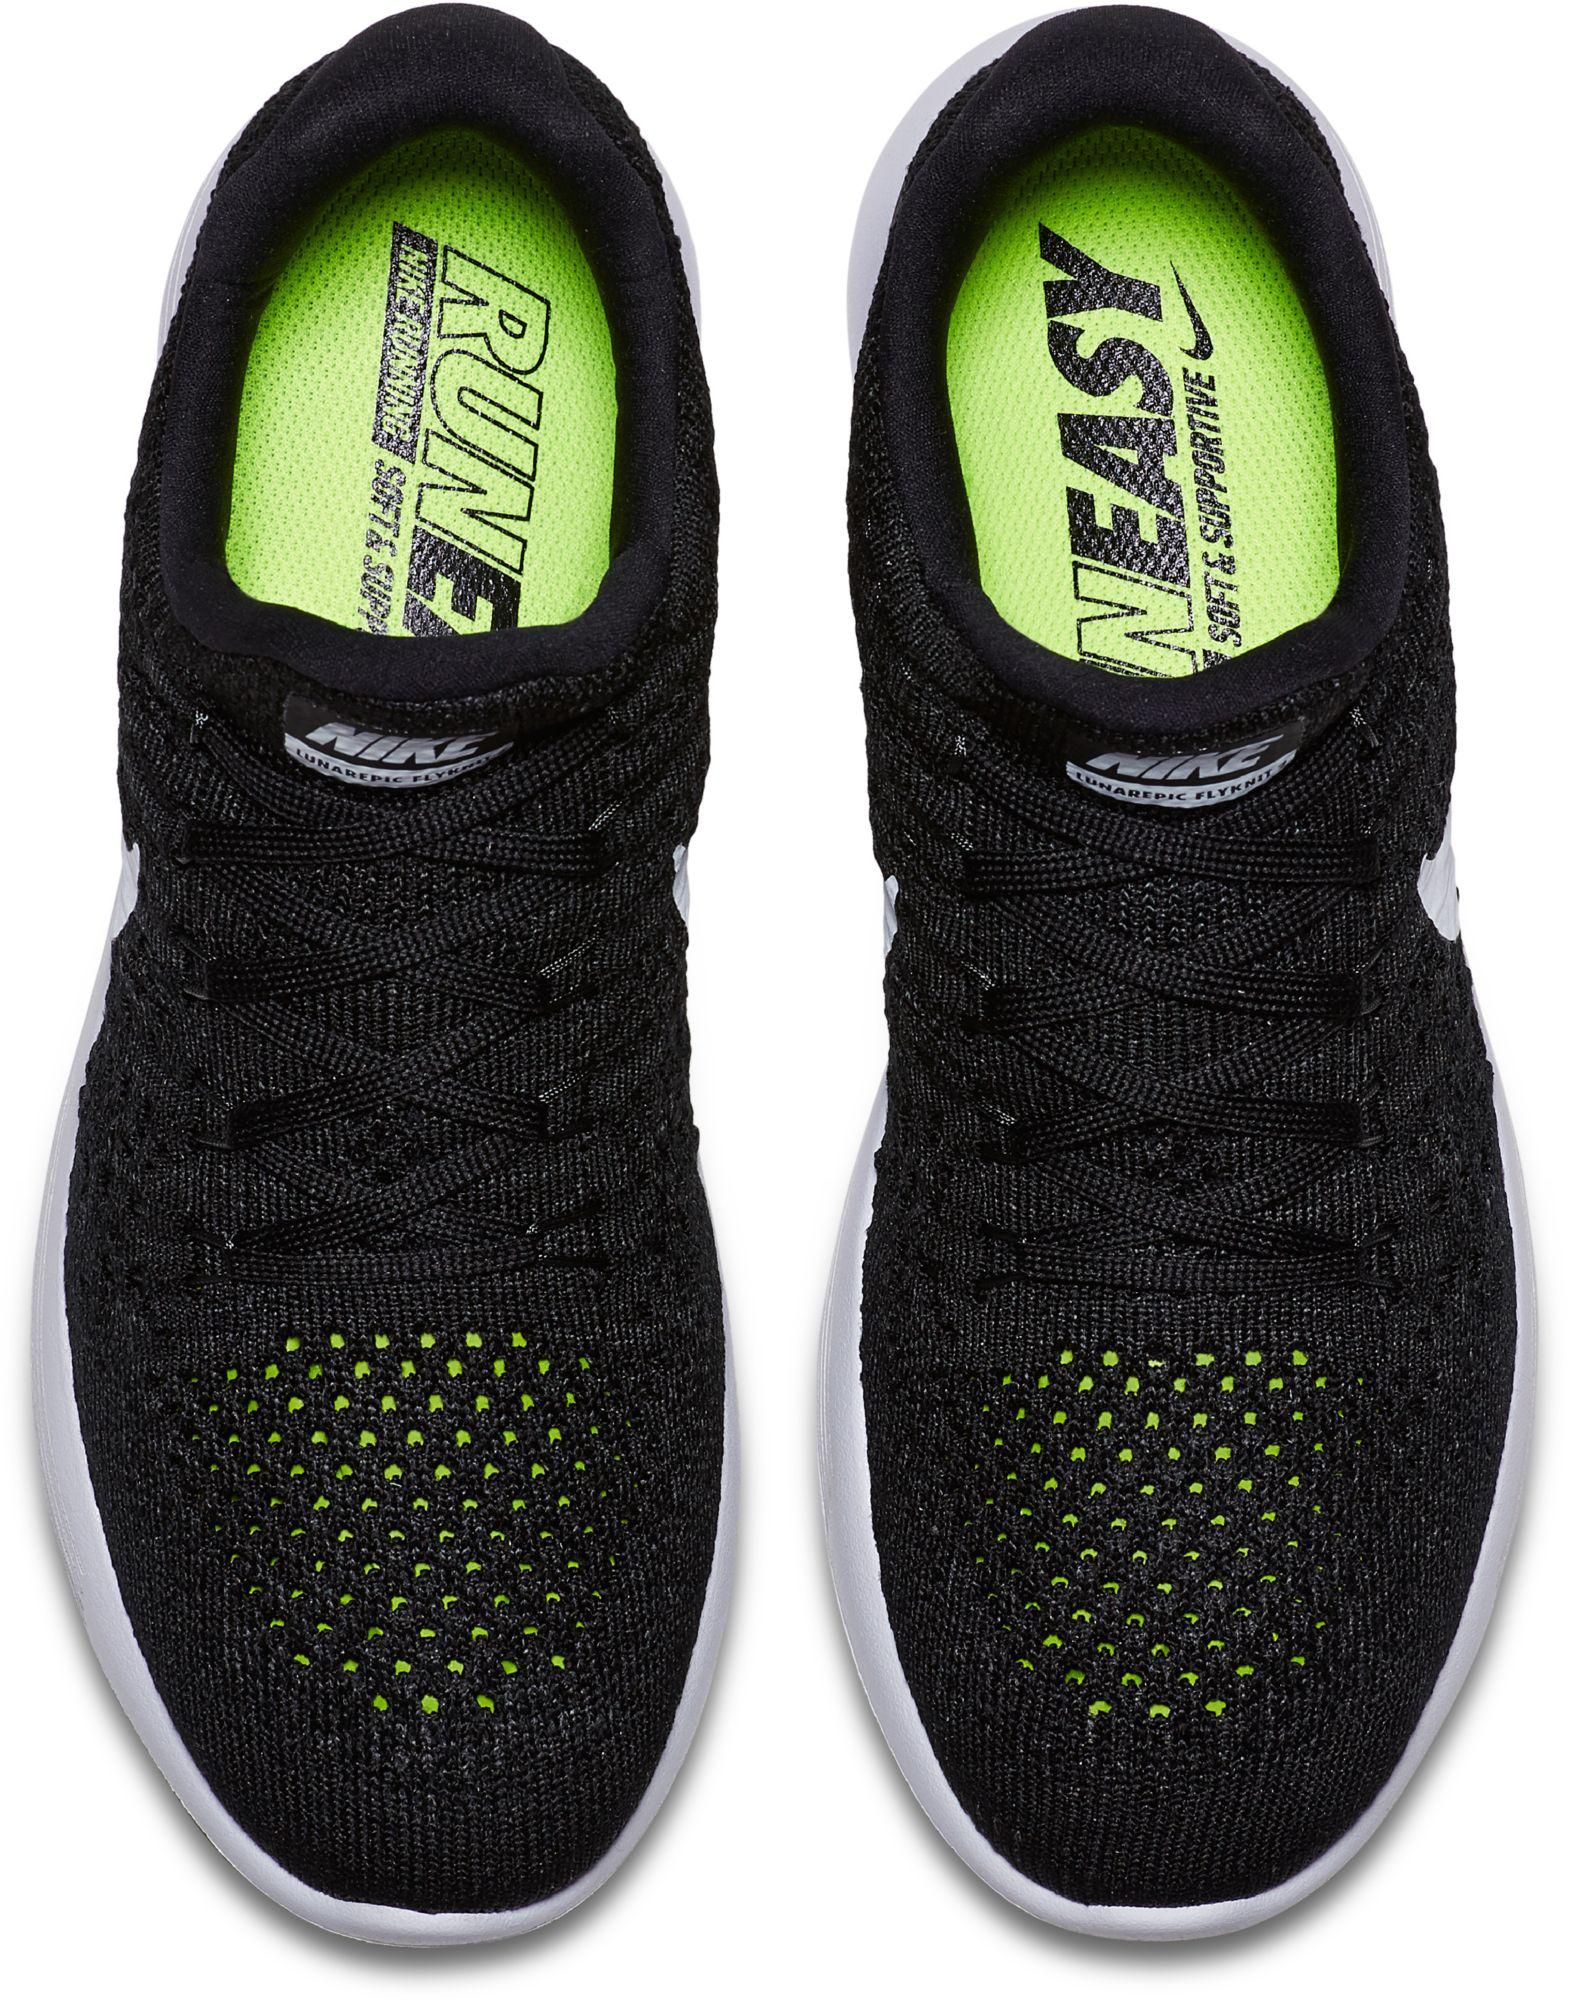 79f5725a671e Lyst - Nike Lunarepic Low Flyknit 2 Running Shoes in Black for Men